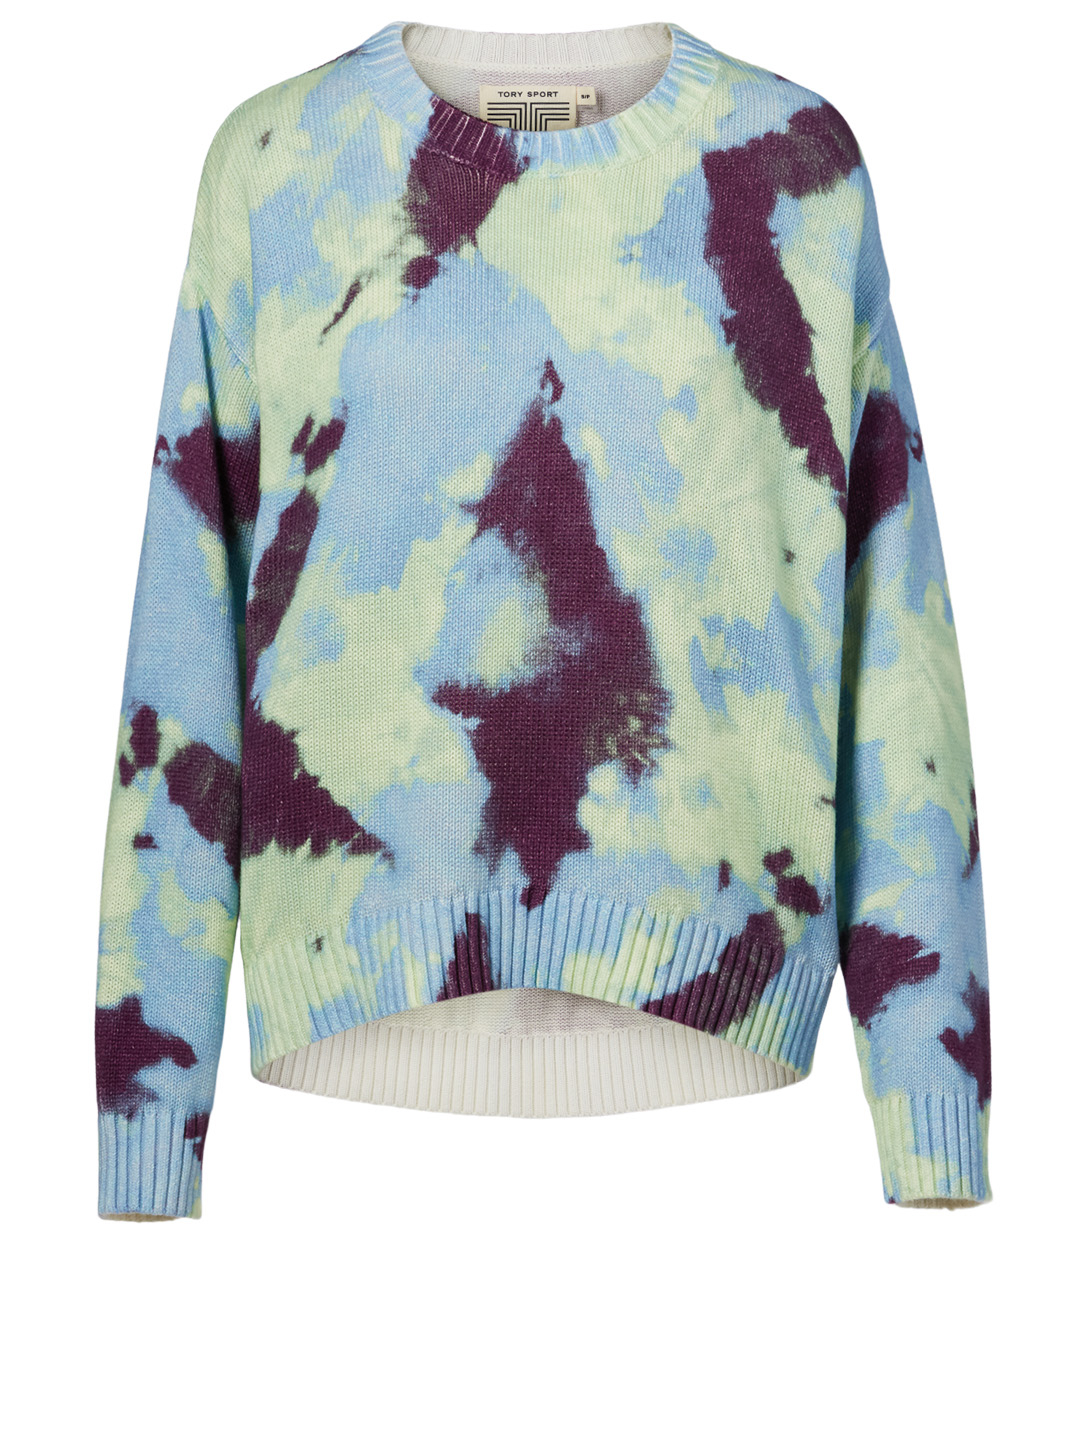 TORY SPORT Tie Dye Sweater Women's Multi